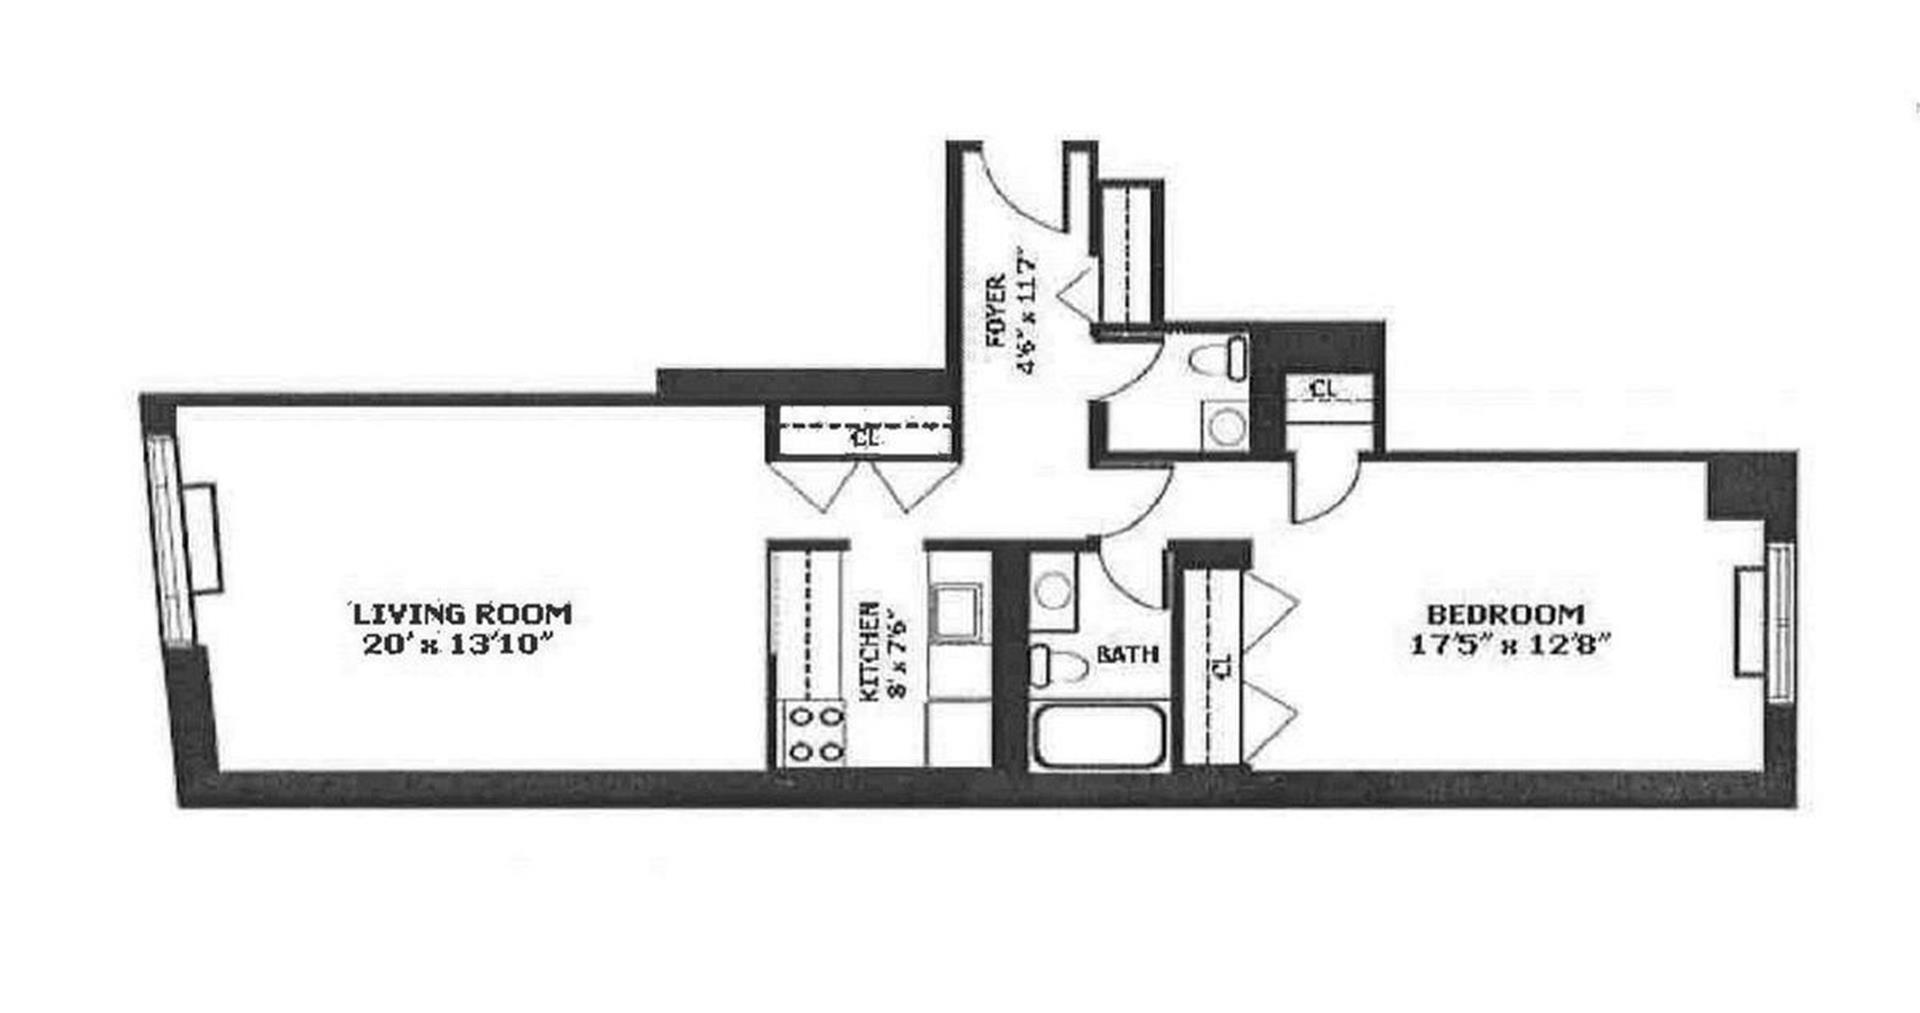 Floor plan of HUDSON TOWER, 350 Albany Street, 4A - Battery Park City, New York